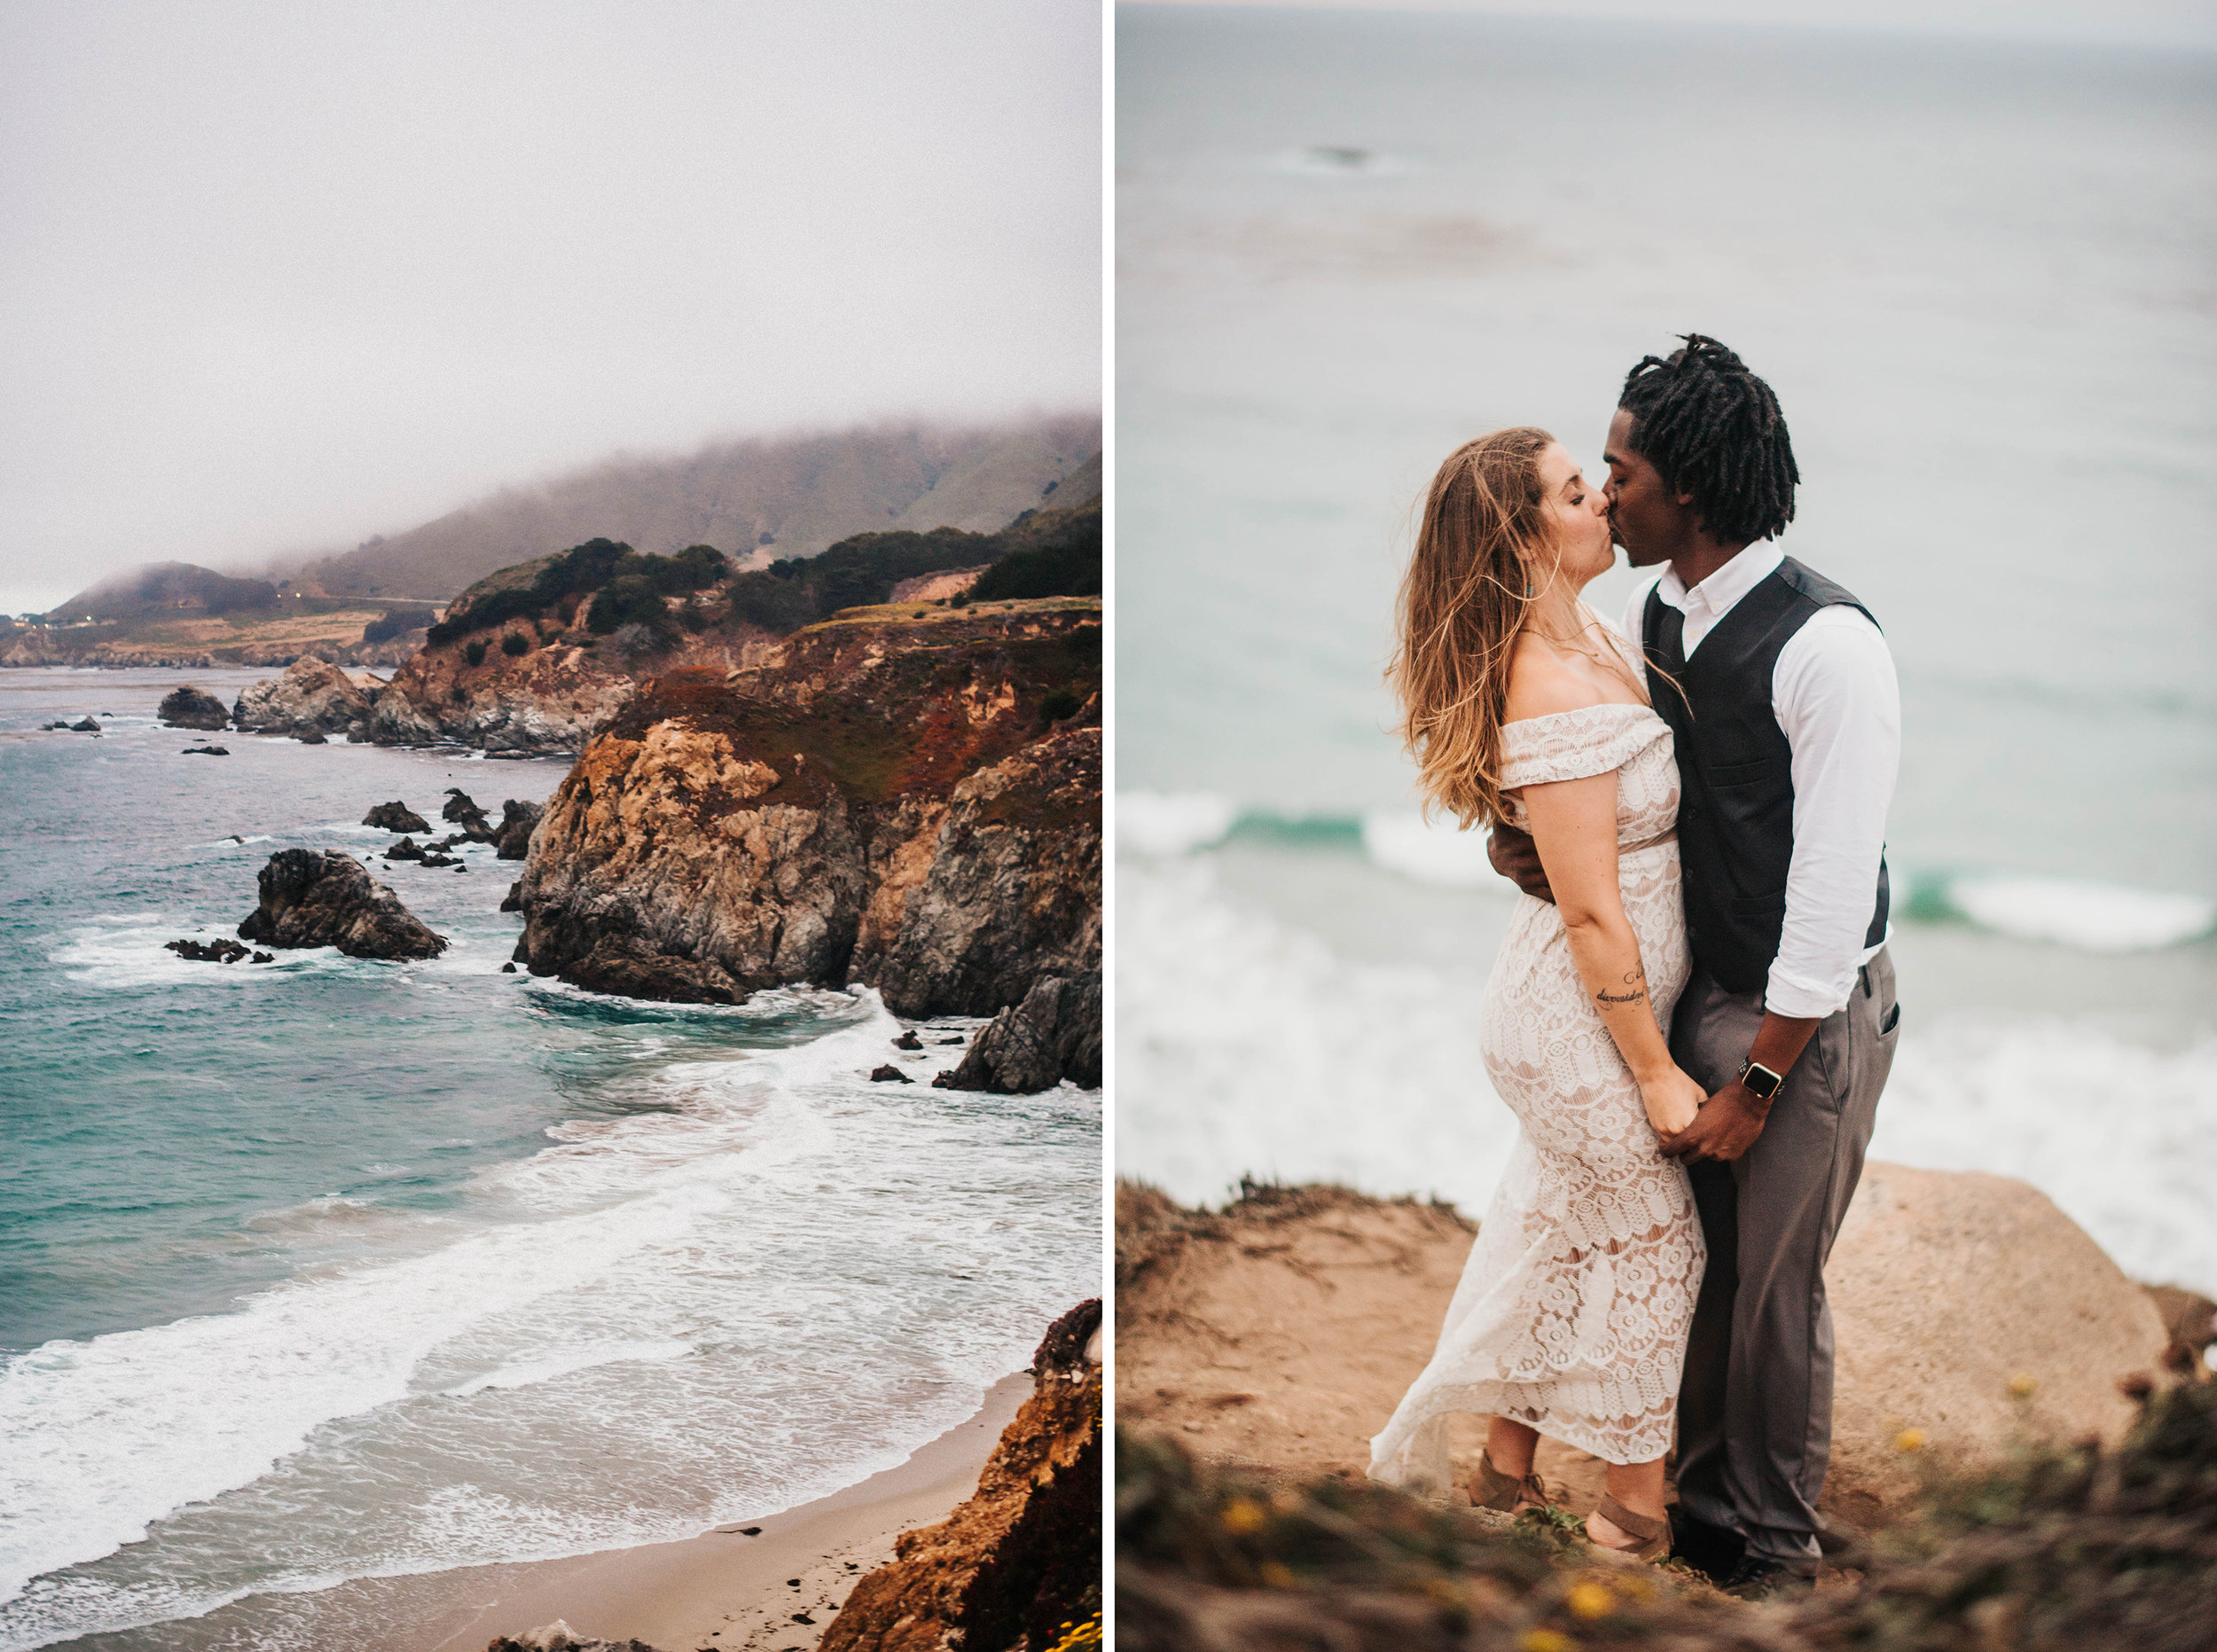 atlanta georgia big sur san francisco california bay area sf oakland wedding portrait adventure engageement nontraditional tattooed couple photographer-236.jpg